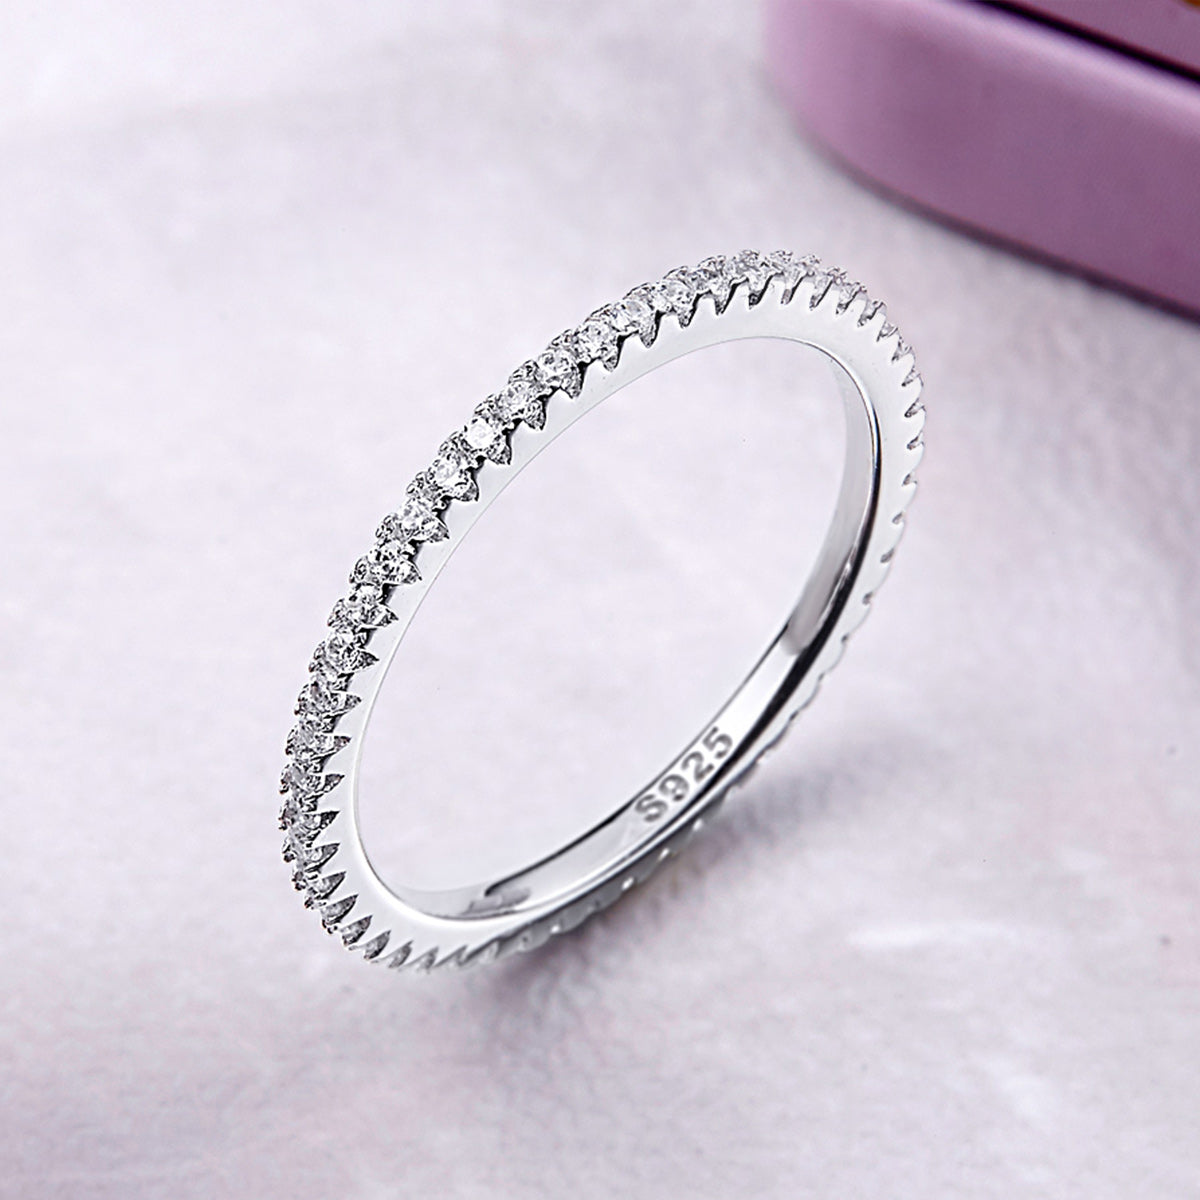 shape ring steel rings stainless lines finger product new c open jewelry geometric titanium engagement hollow